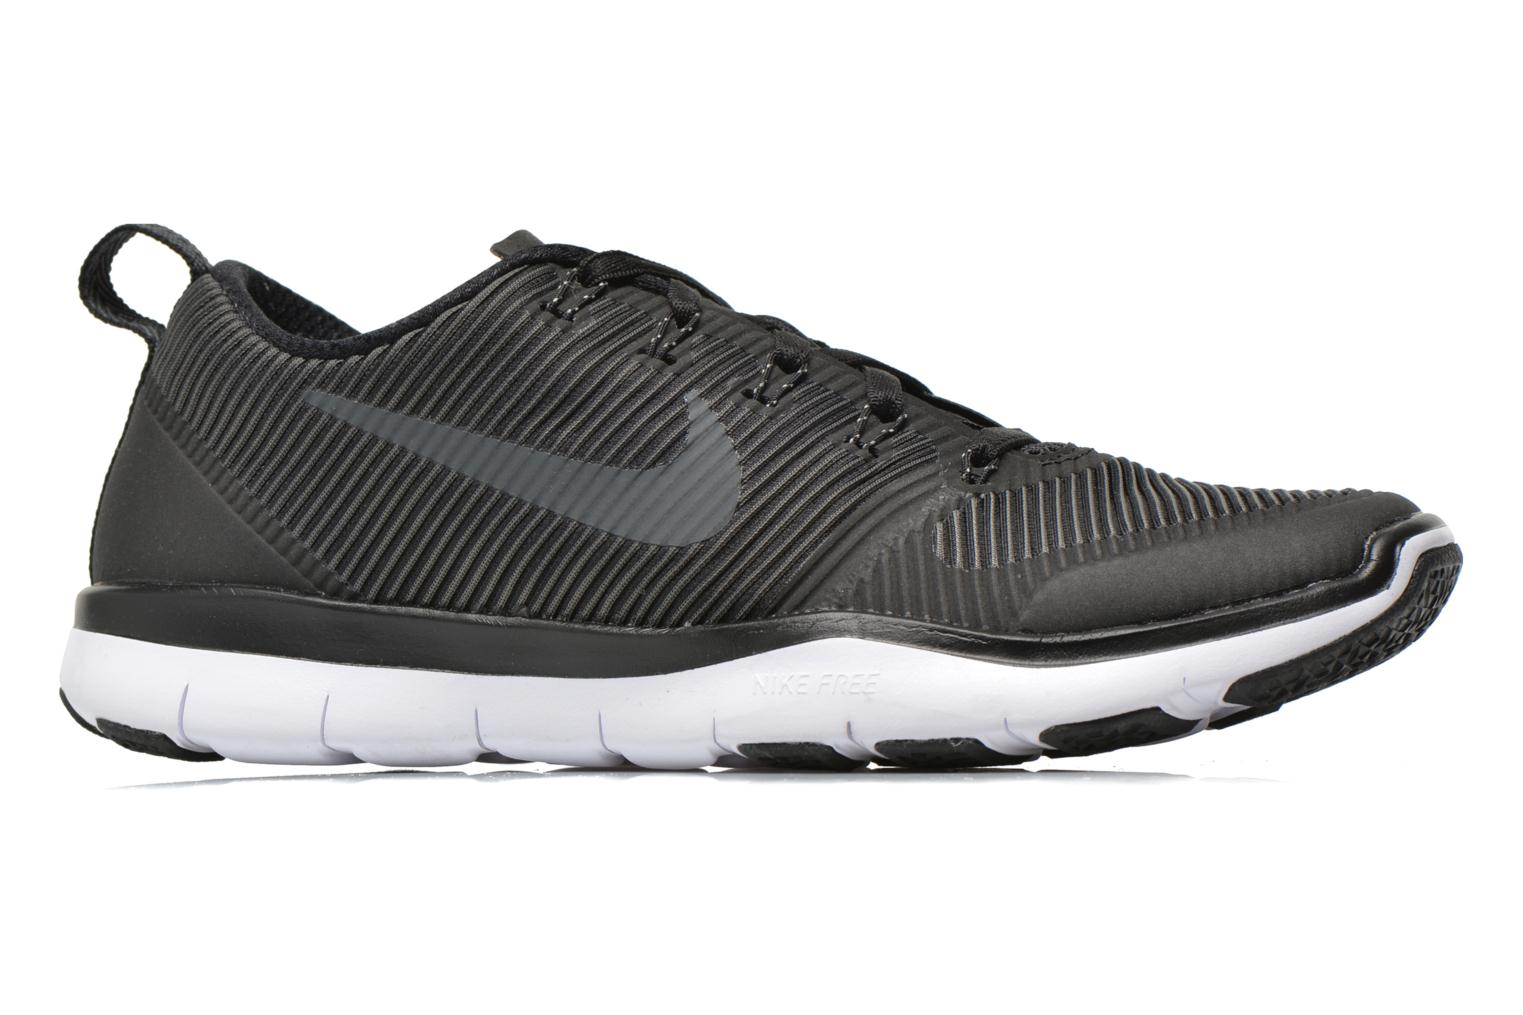 Nike Free Train Versatility Black/black-White